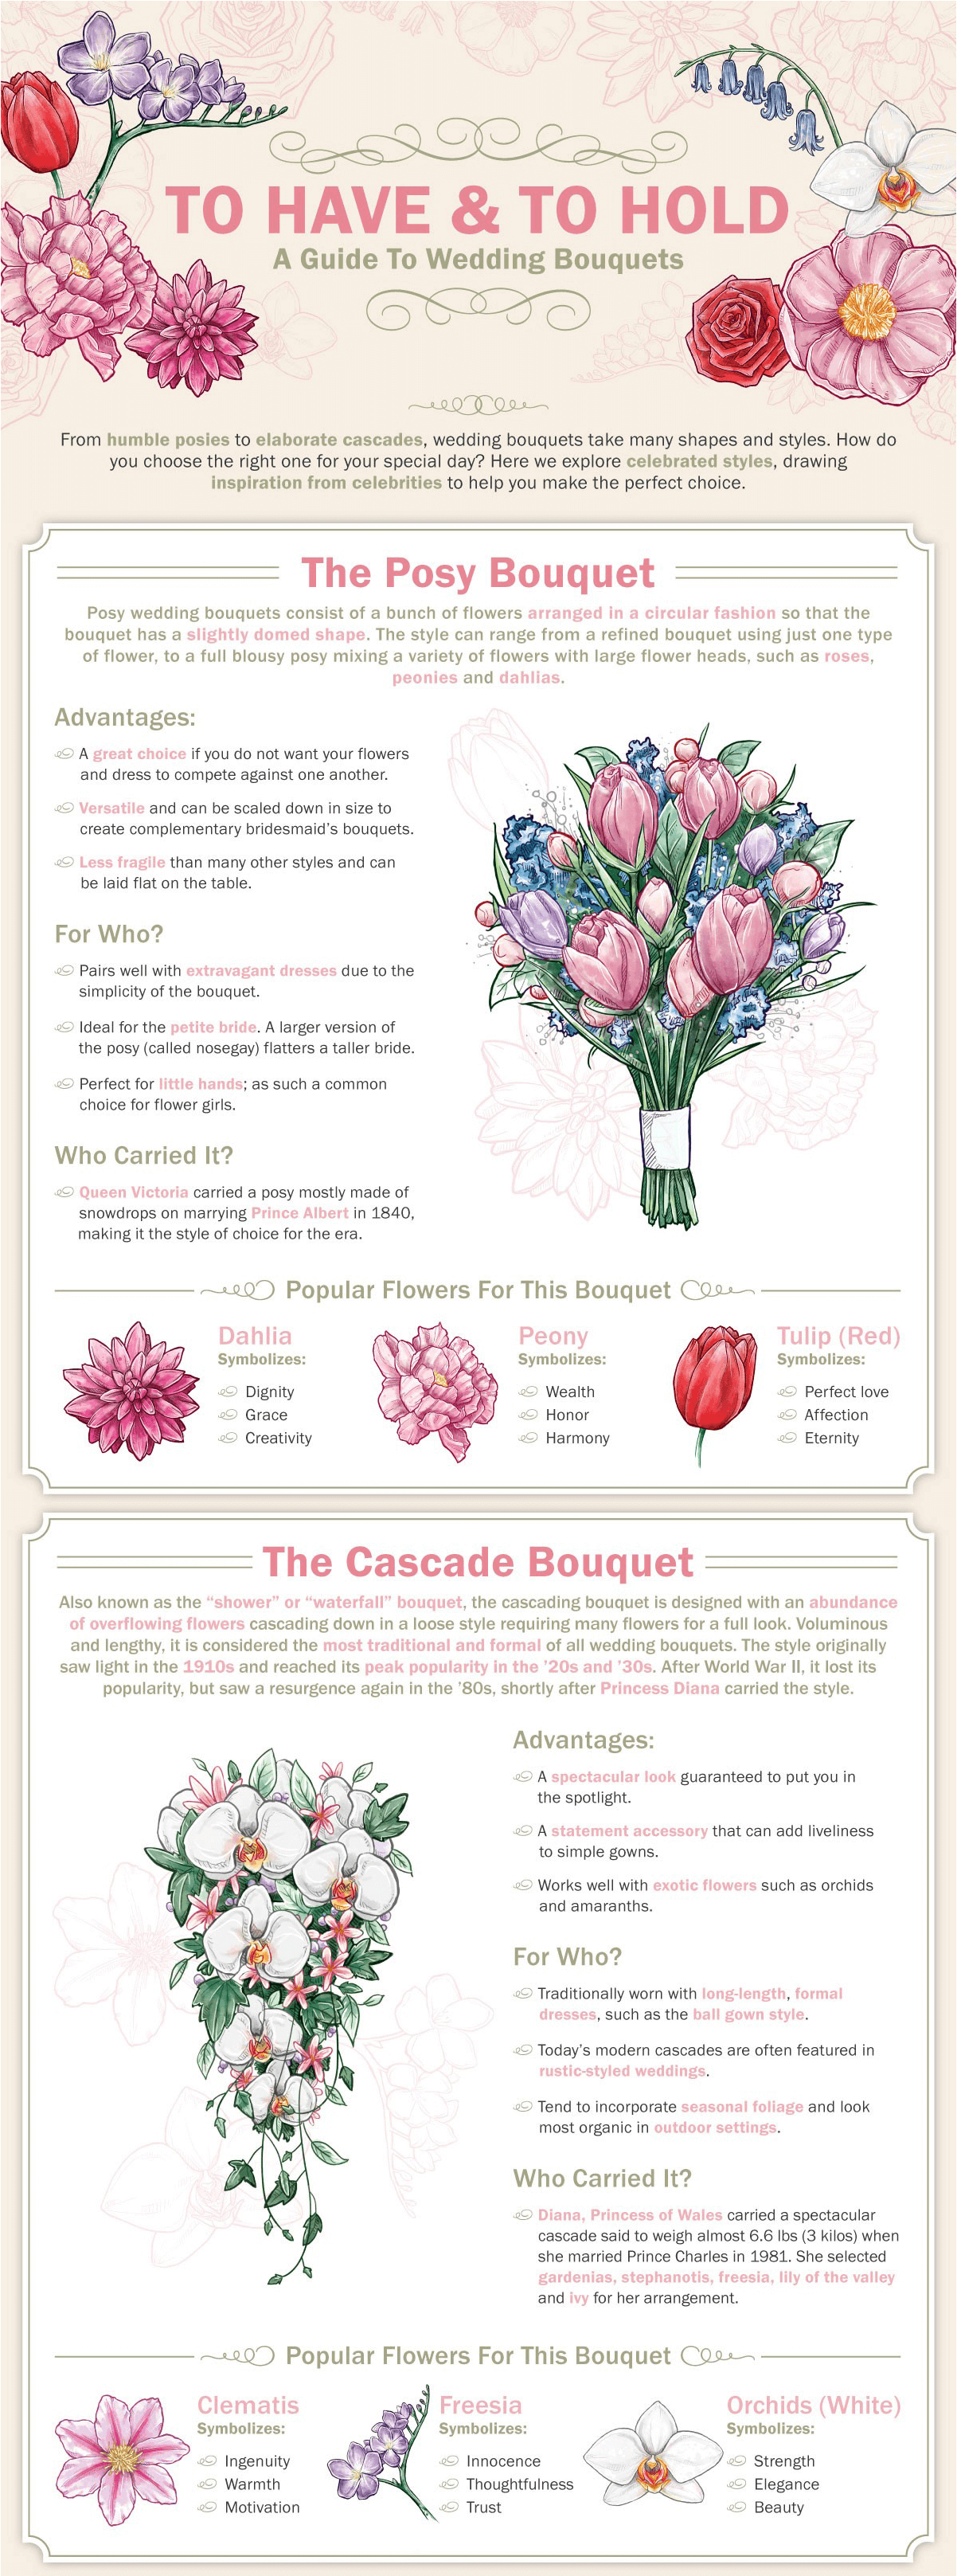 To Have and To Hold: A Guide to Wedding Bouquets